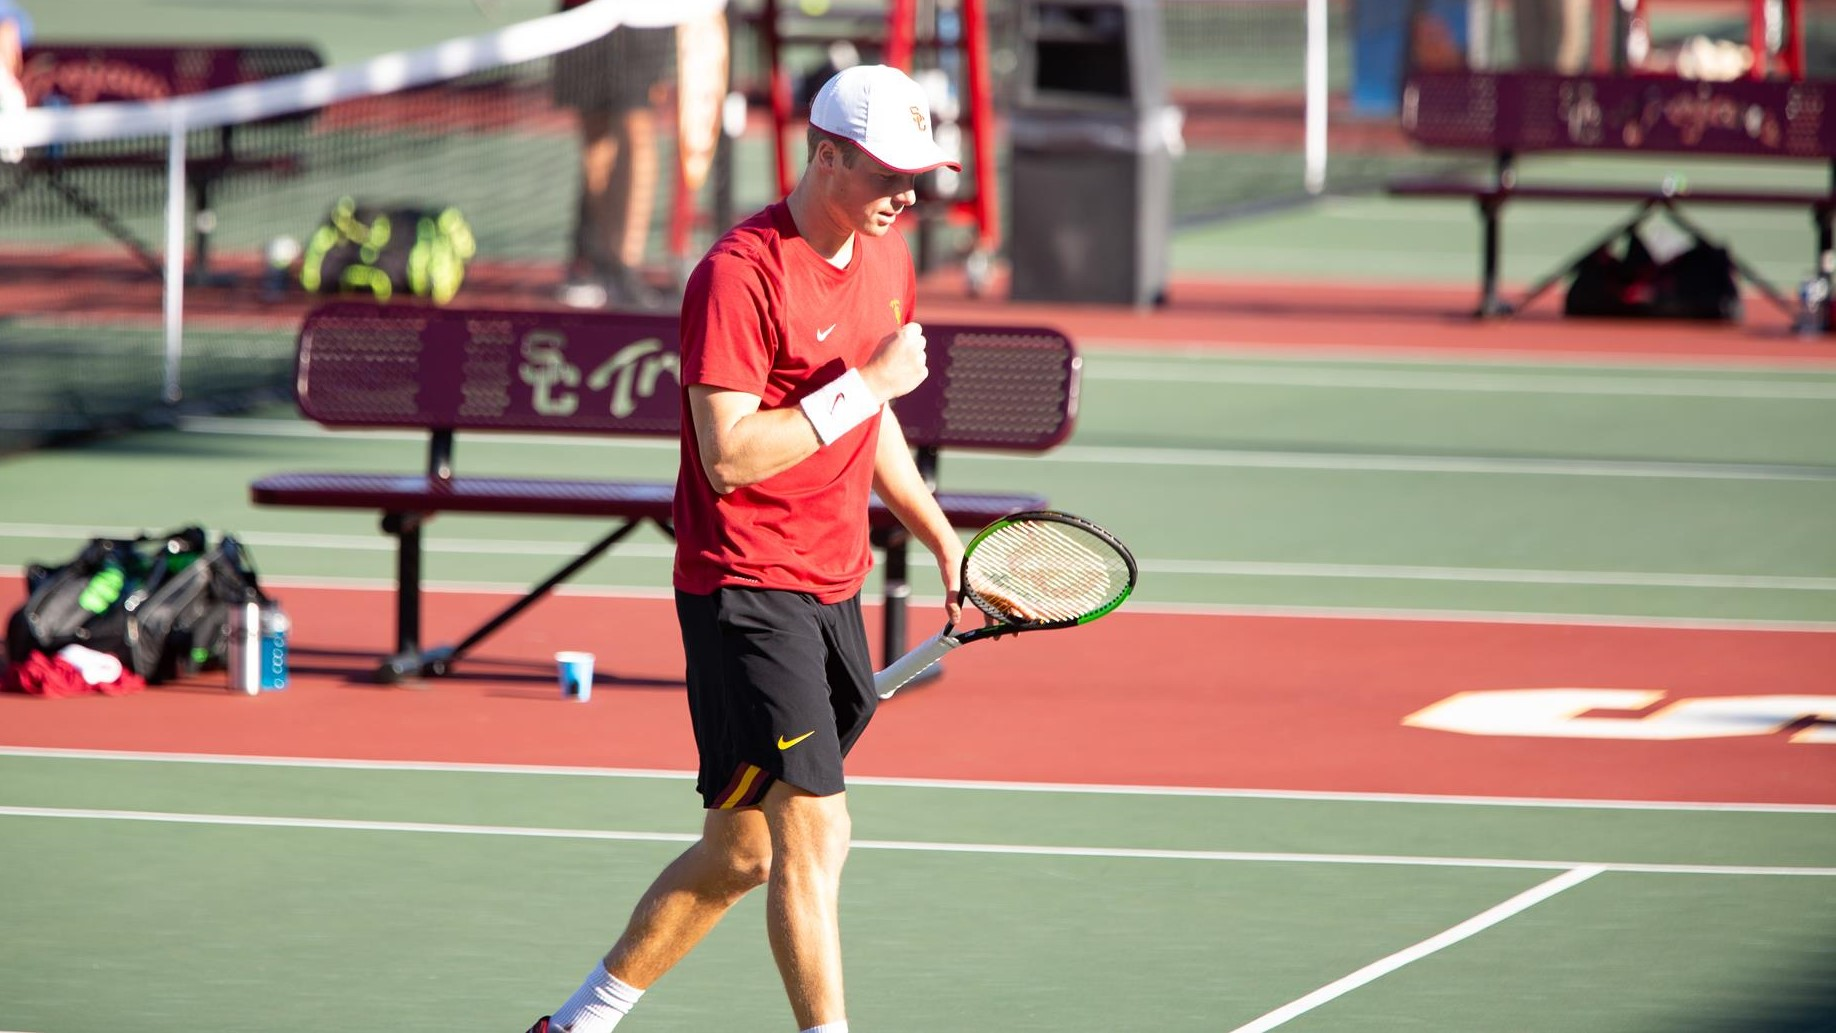 61fd7e2ce41e6 Laurens Verboven - Men's Tennis - USC Athletics